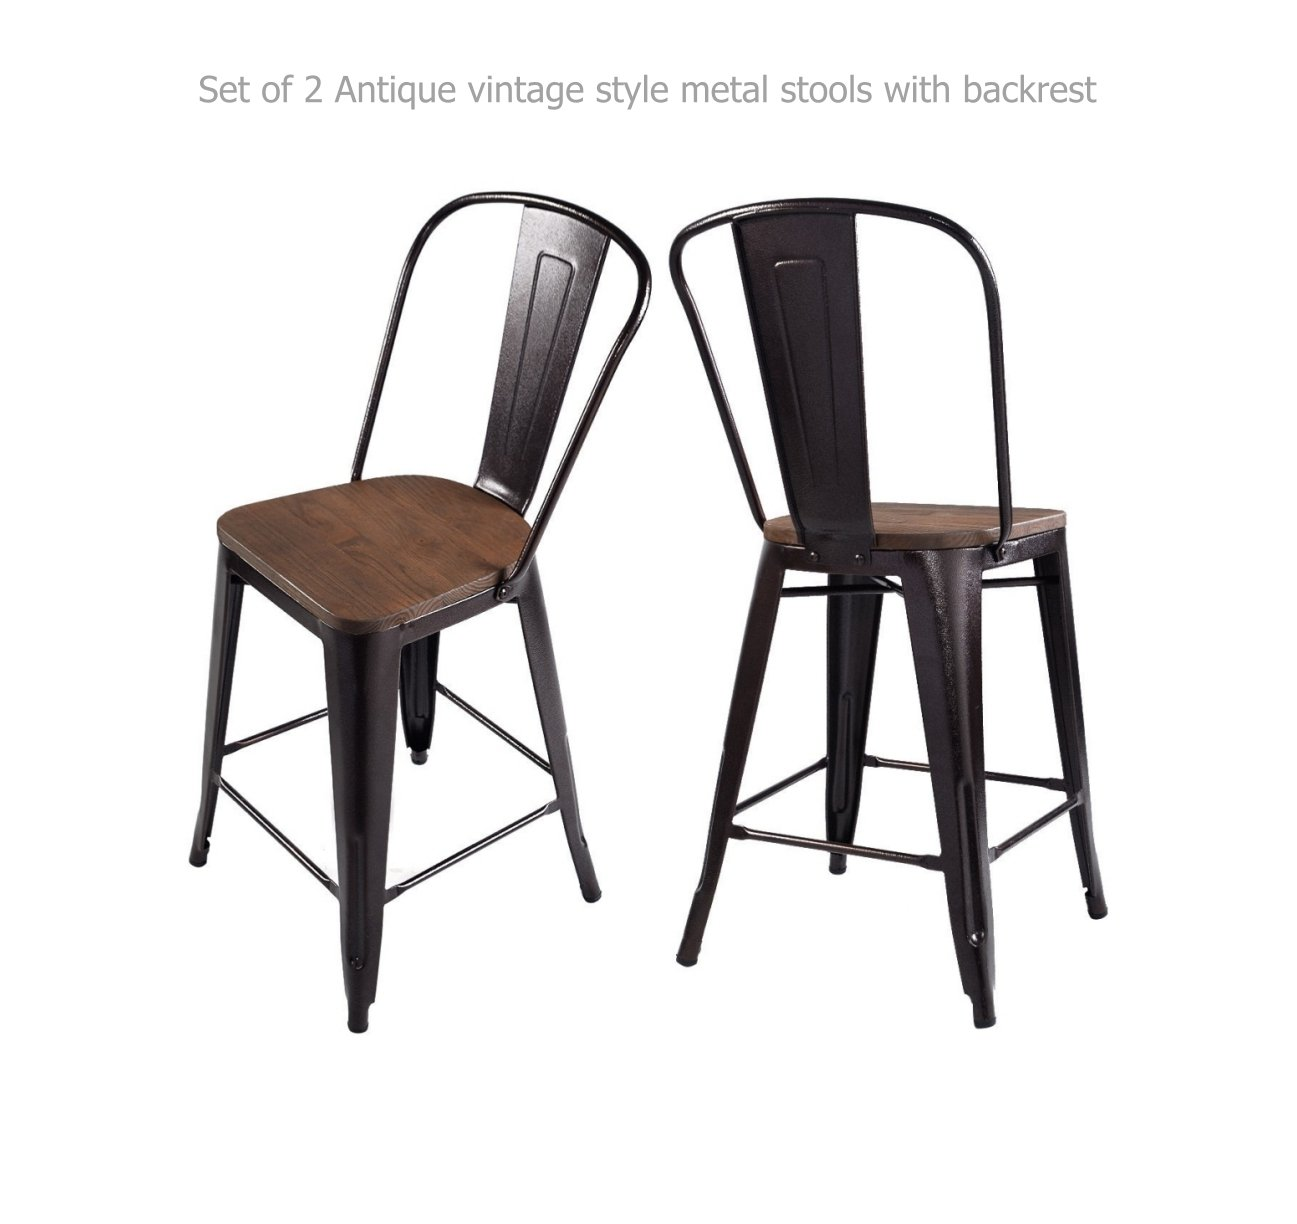 Vintage Antique Style Metal Rustic Wood Bar Stools School Office Kitchen Dining Chairs Sturdy Heavy Duty Steel Frame Scratch Resistant Comfortable Backrest New Copper Set of 2 - 44''H #1209a